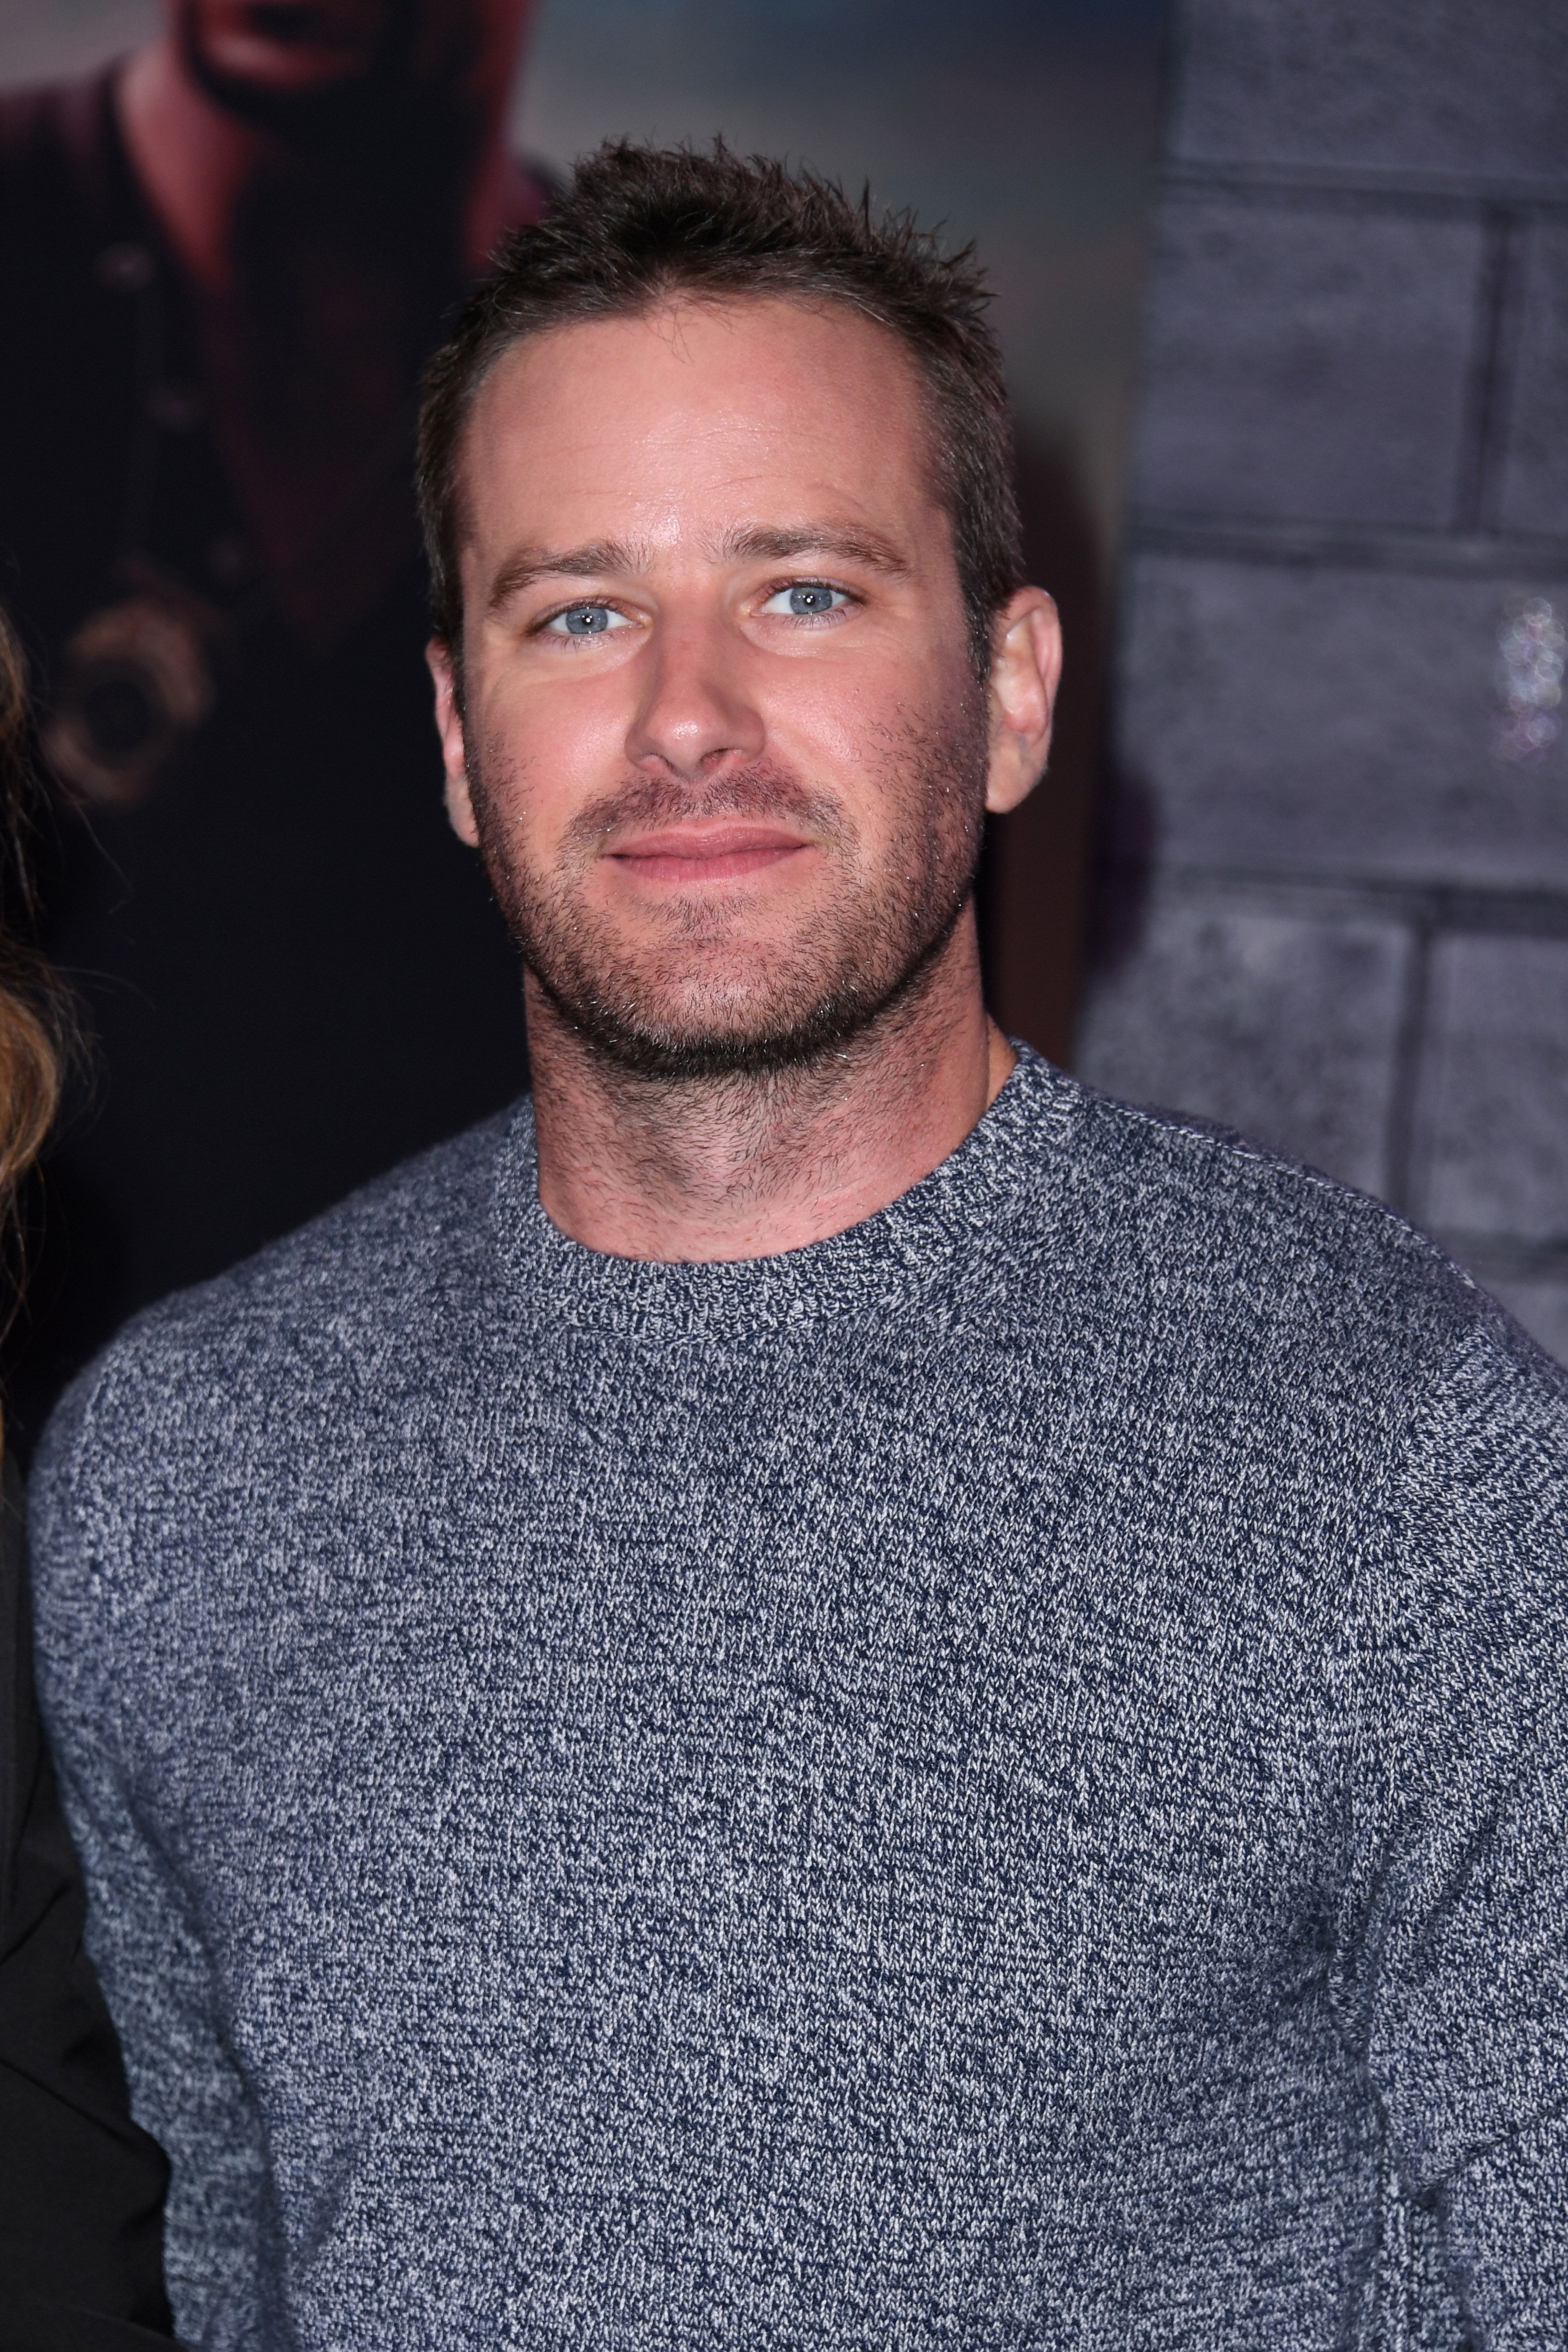 Armie Hammer wears a sweater at the premiere of Bad Boys For Life in Hollywood on January 14, 2020